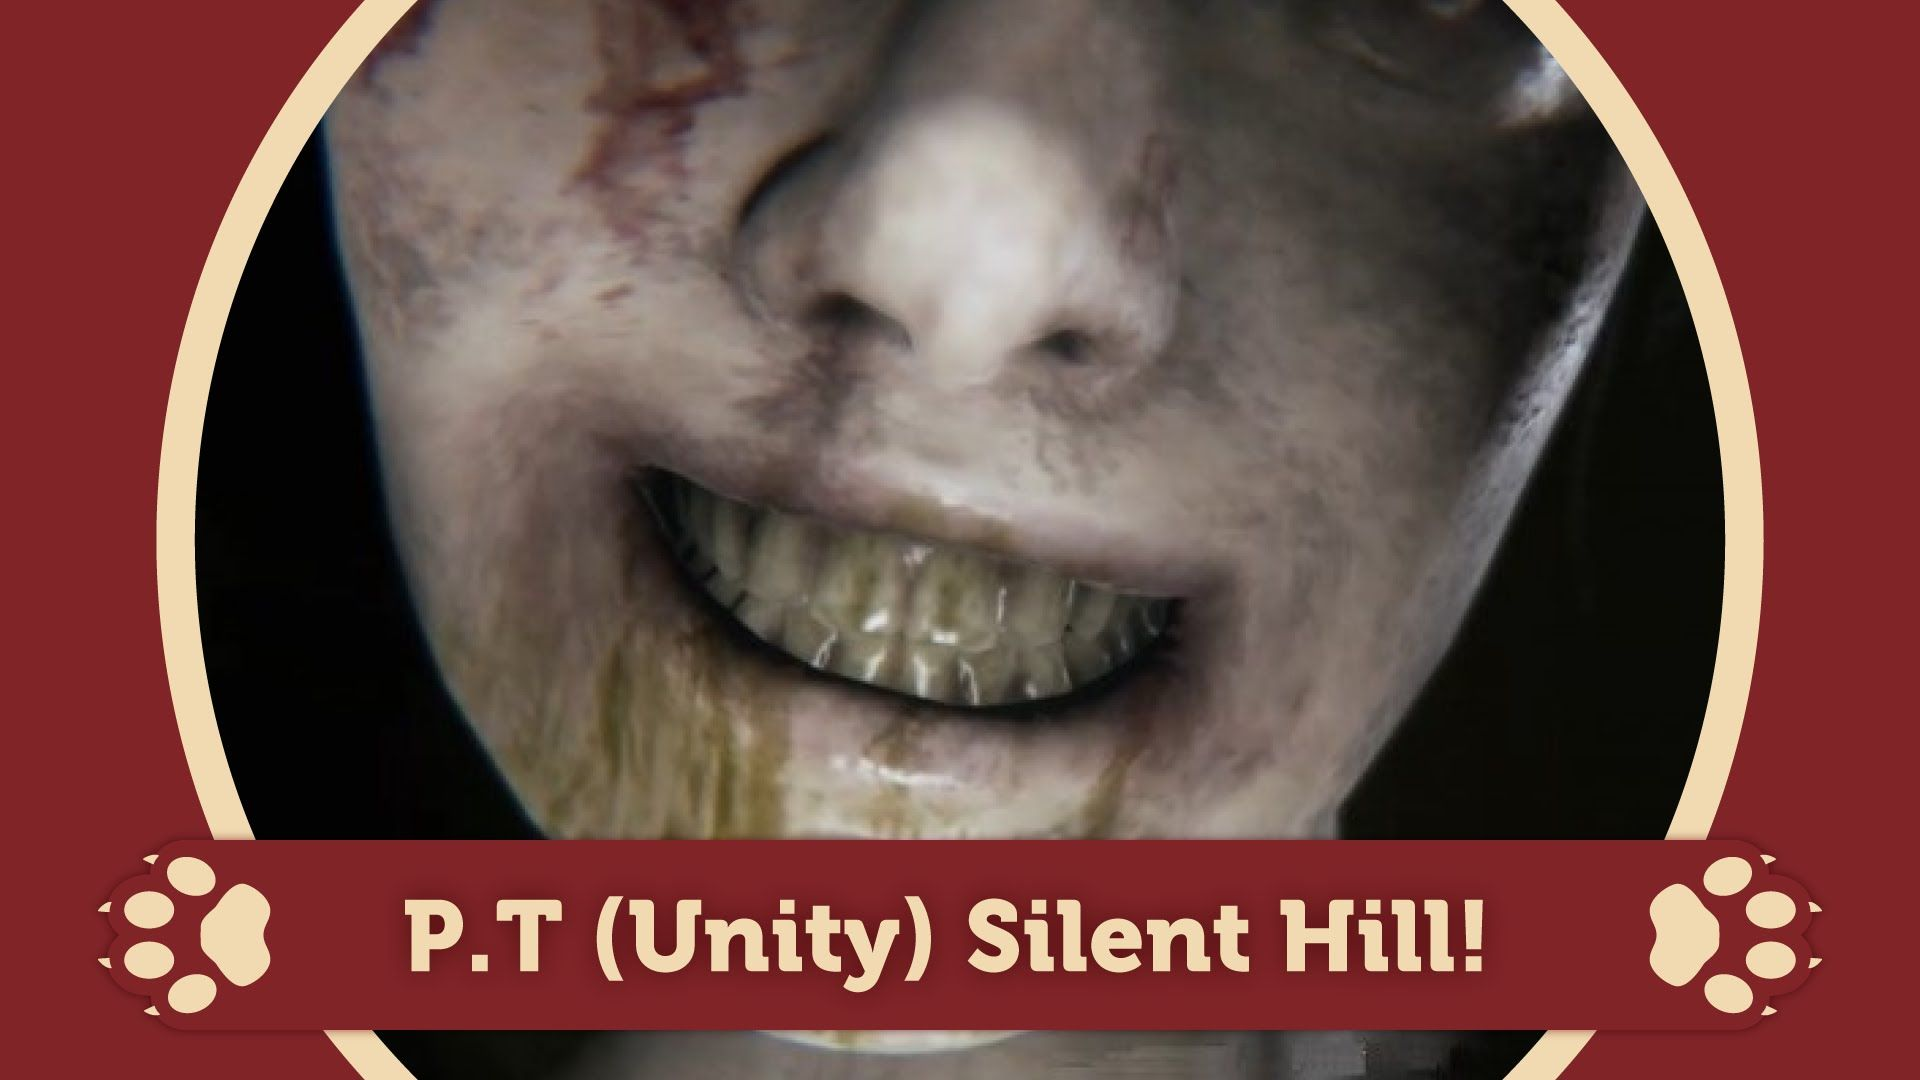 We play the Unity remake of the P.T demo, I would give anything to play the version on PS4. #P.T #Gaming #funny #scary #horror